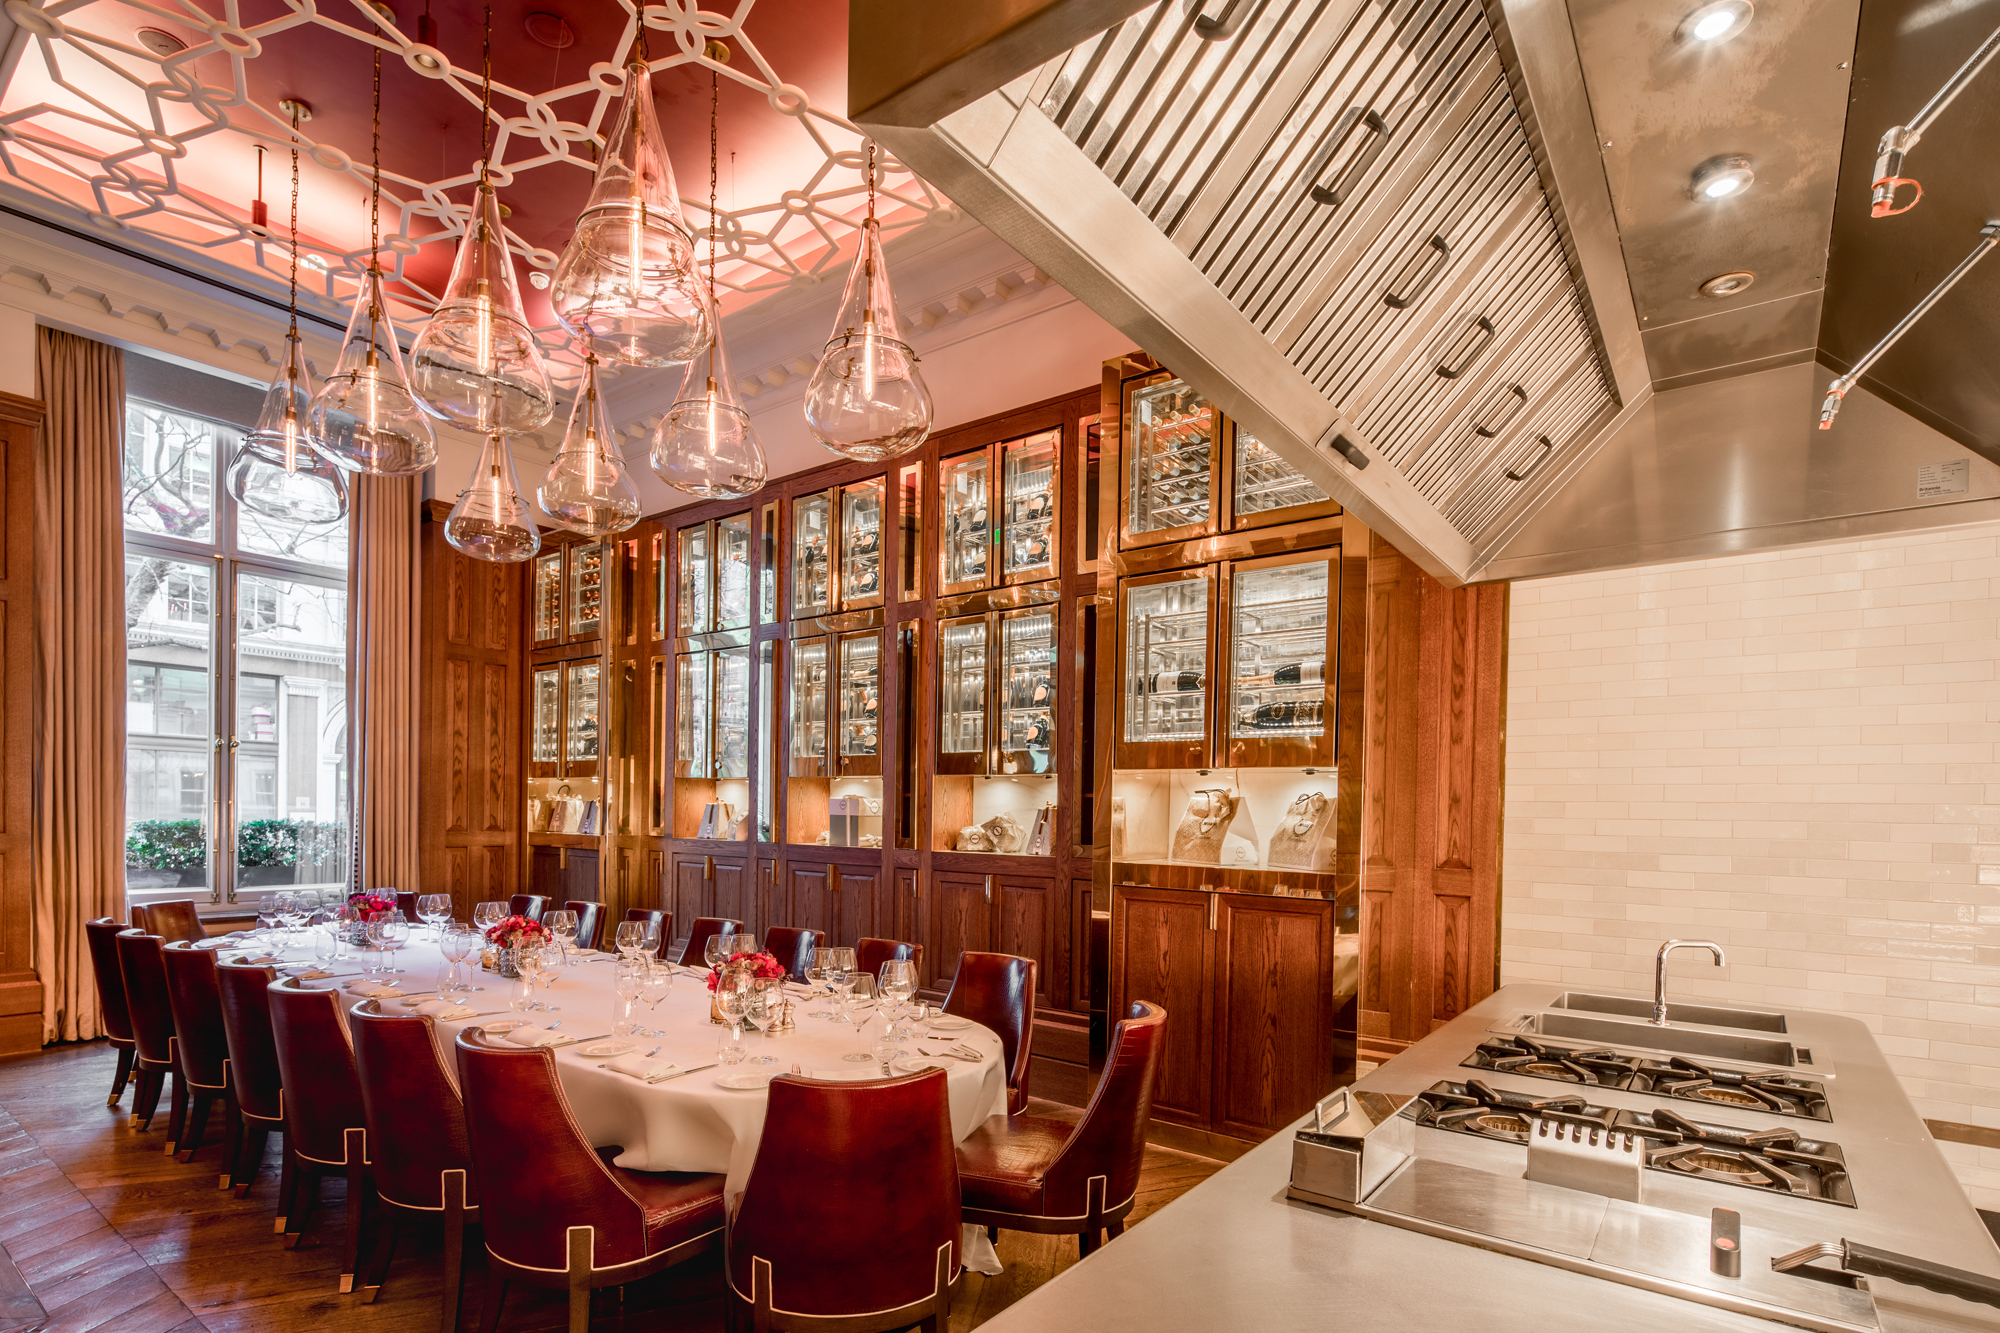 Massimo private dining room